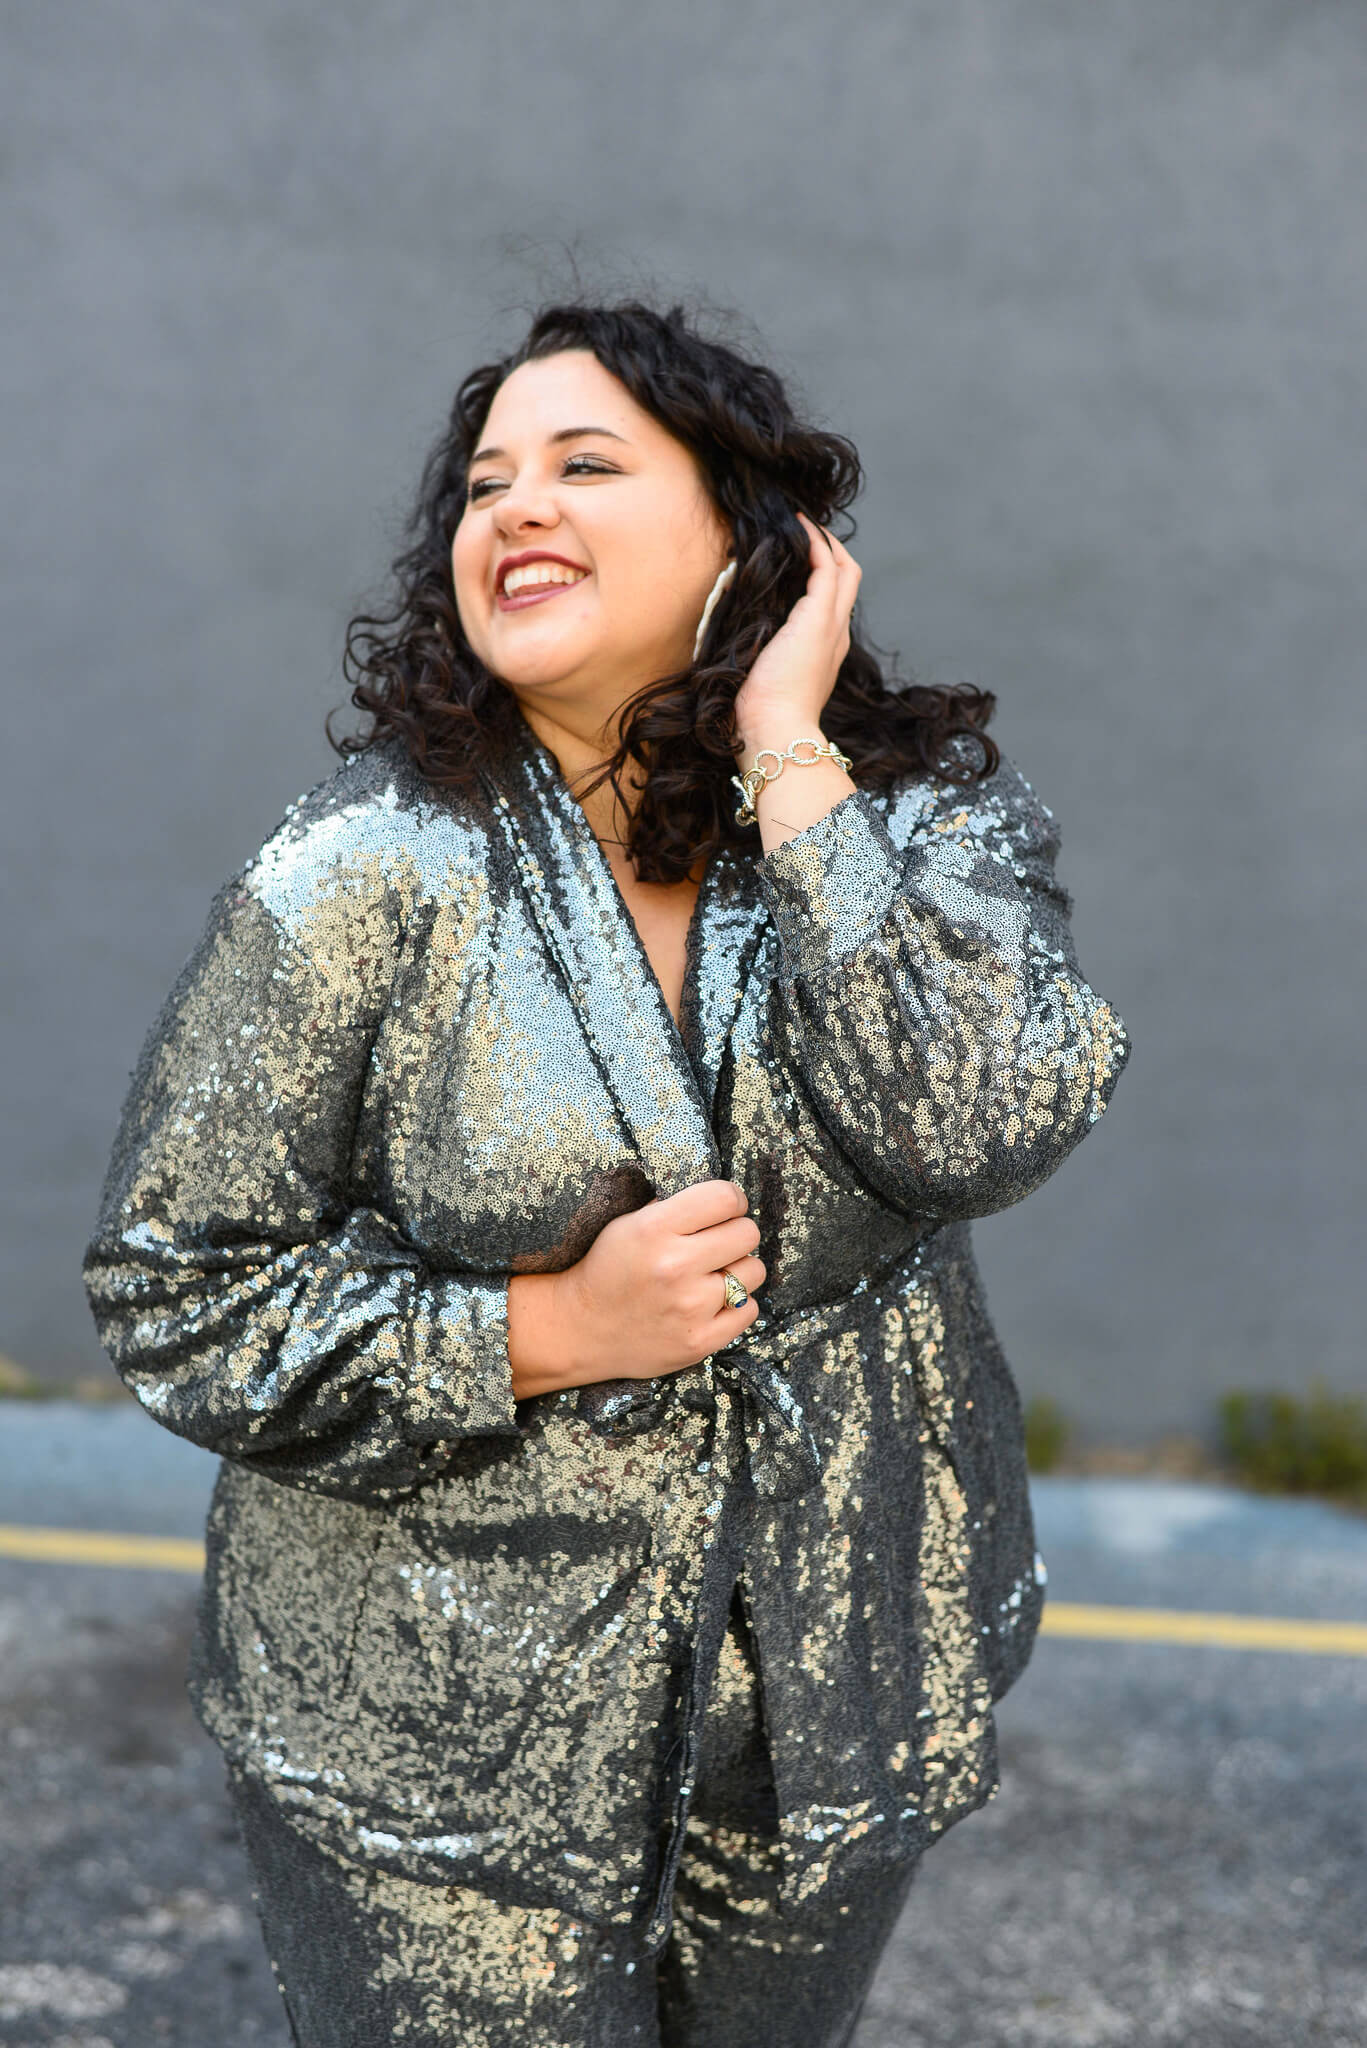 Feeling amazing in a curvy sequin blazer